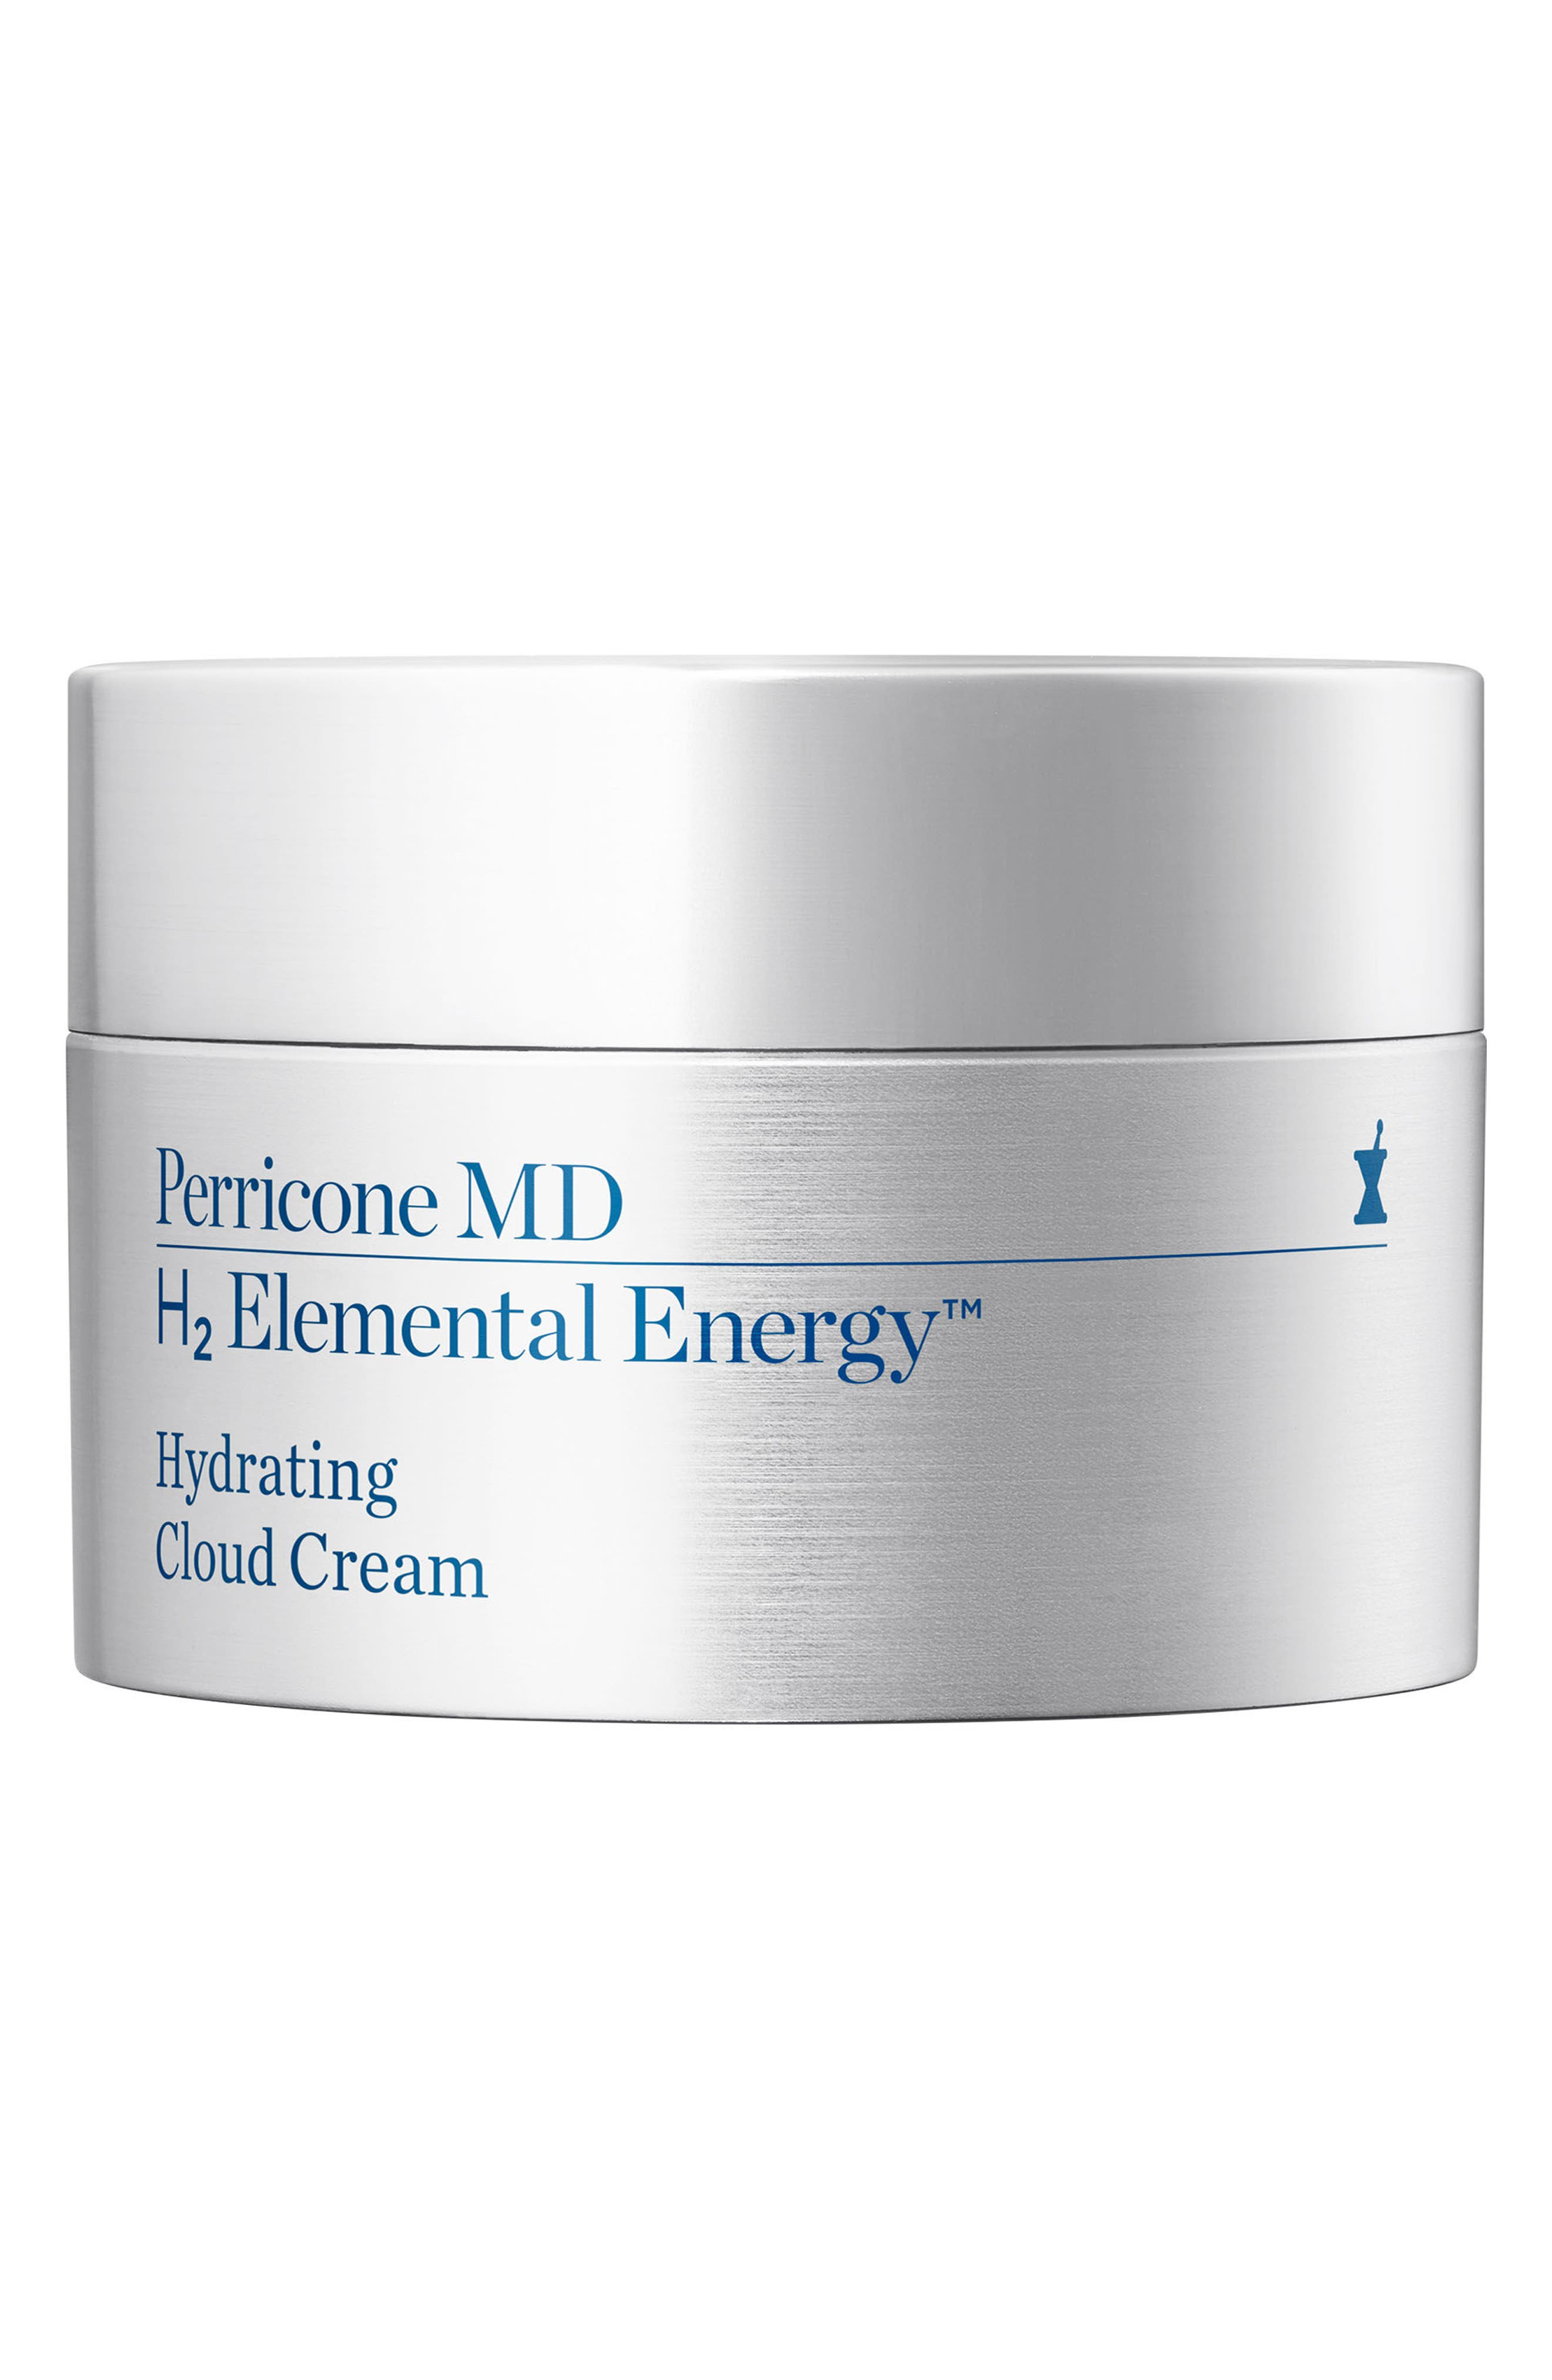 H2 Elemental Energy Hydrating Cloud Cream,                             Main thumbnail 1, color,                             No Color